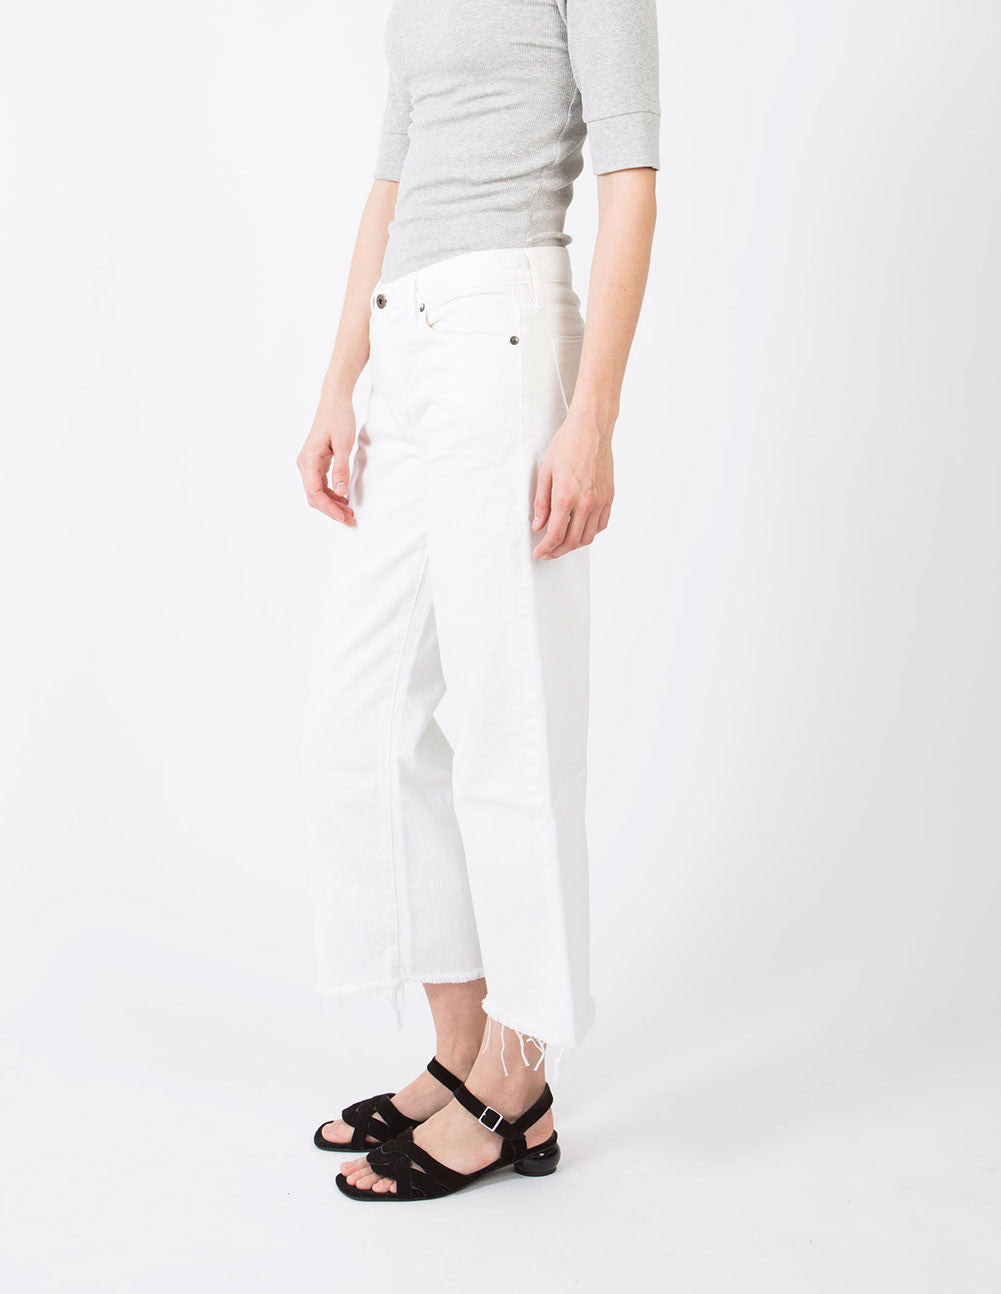 Lamere White Denim